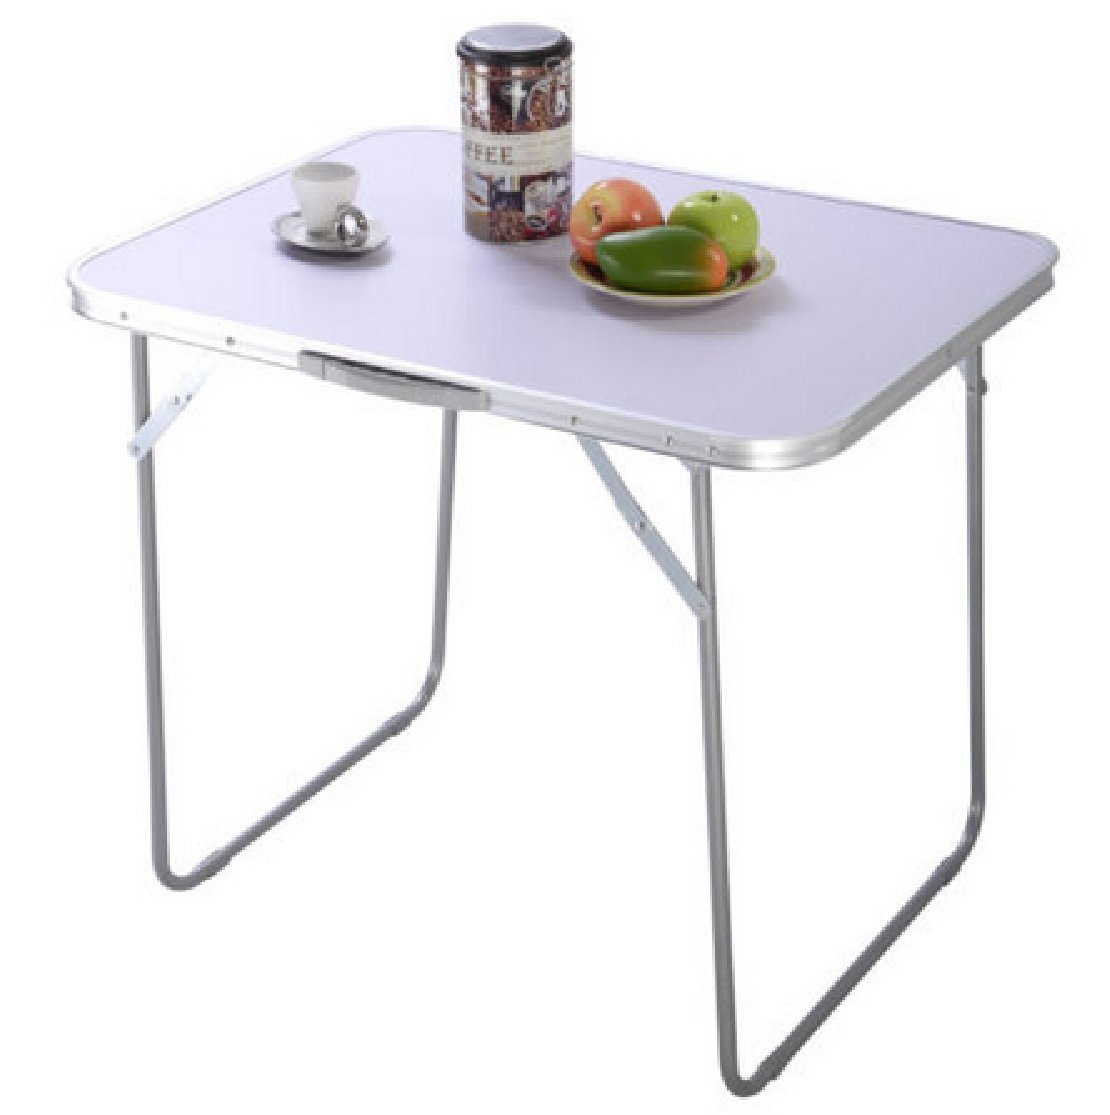 Portable Folding Table Coffee : In/Outdoor Picnic Party Dining Camping Desk 2FT by Phumon567